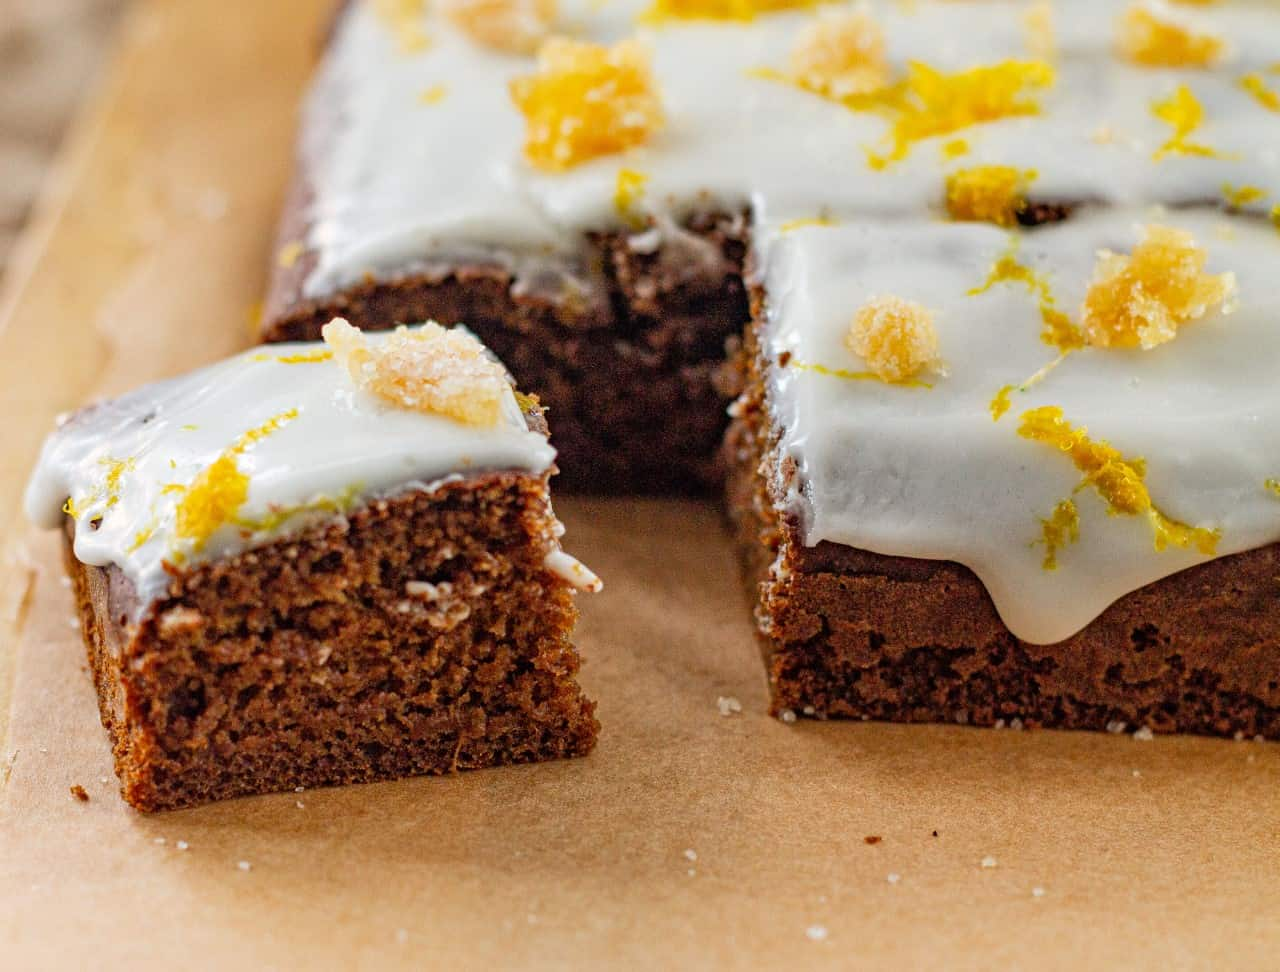 How to Make Old Fashioned Vegan Gingerbread Cake